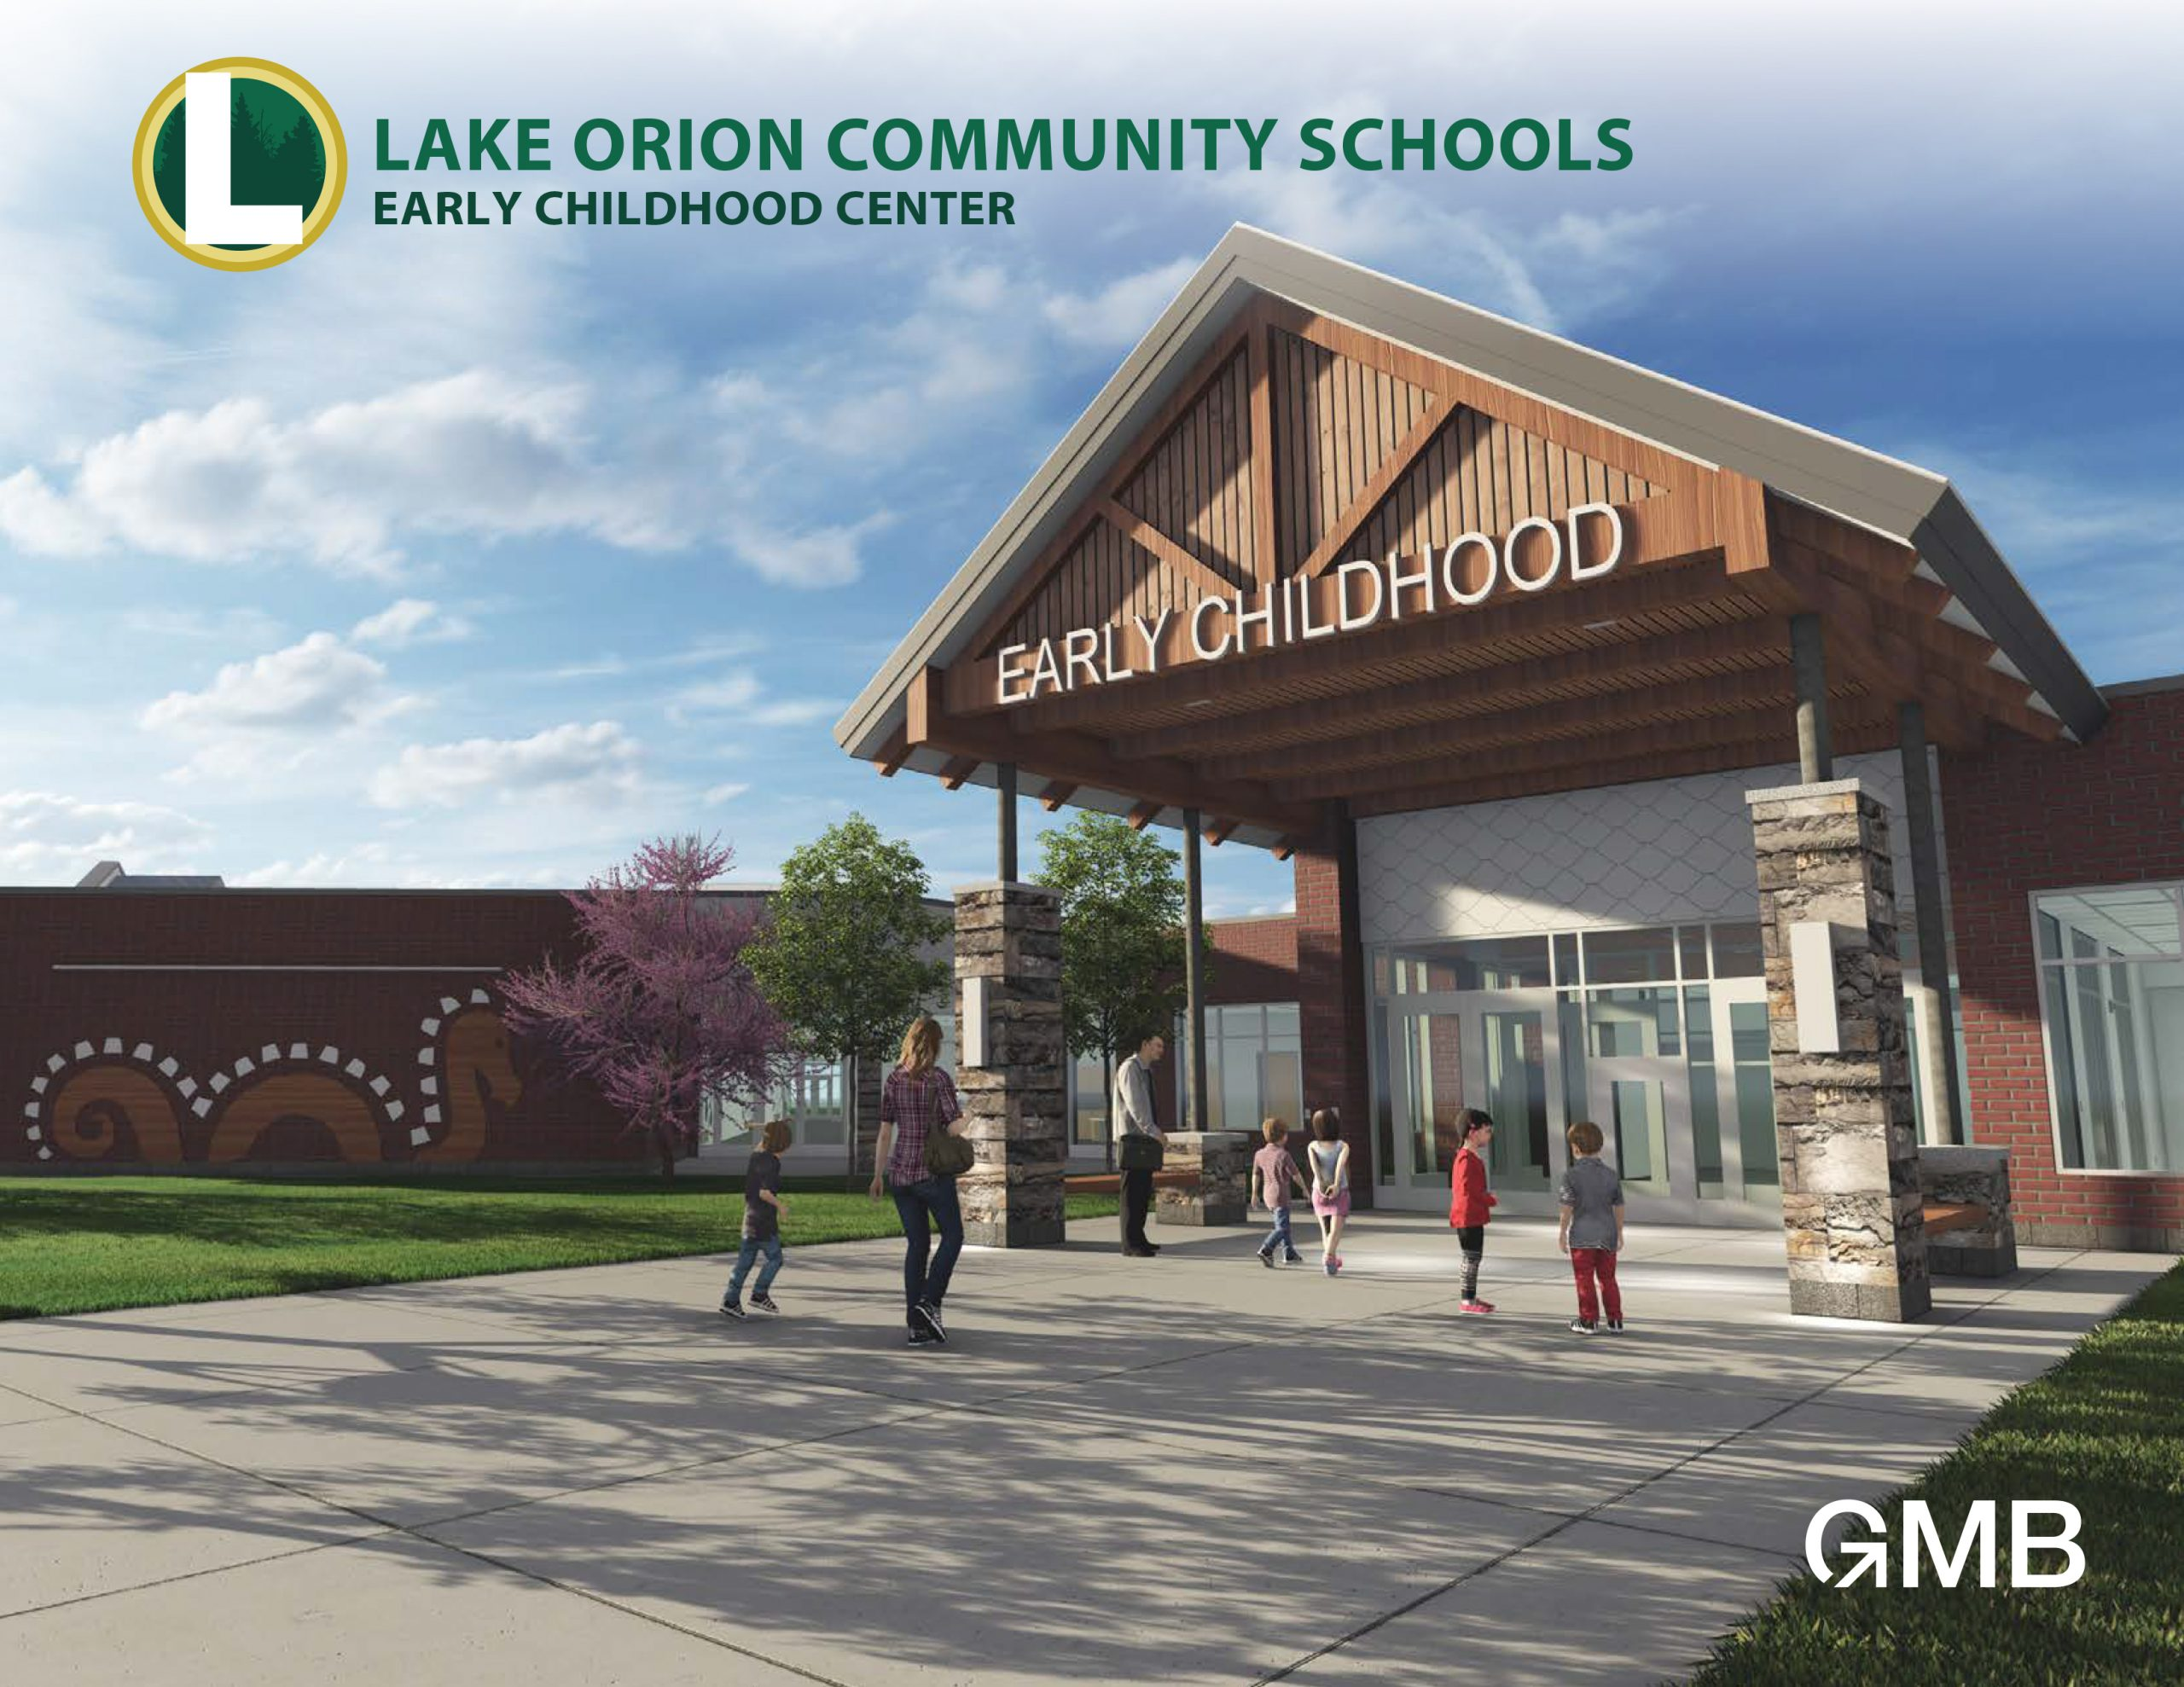 Early Childhood Center - Lake Orion Community Schools With Lake Orion High School Calendar 2020